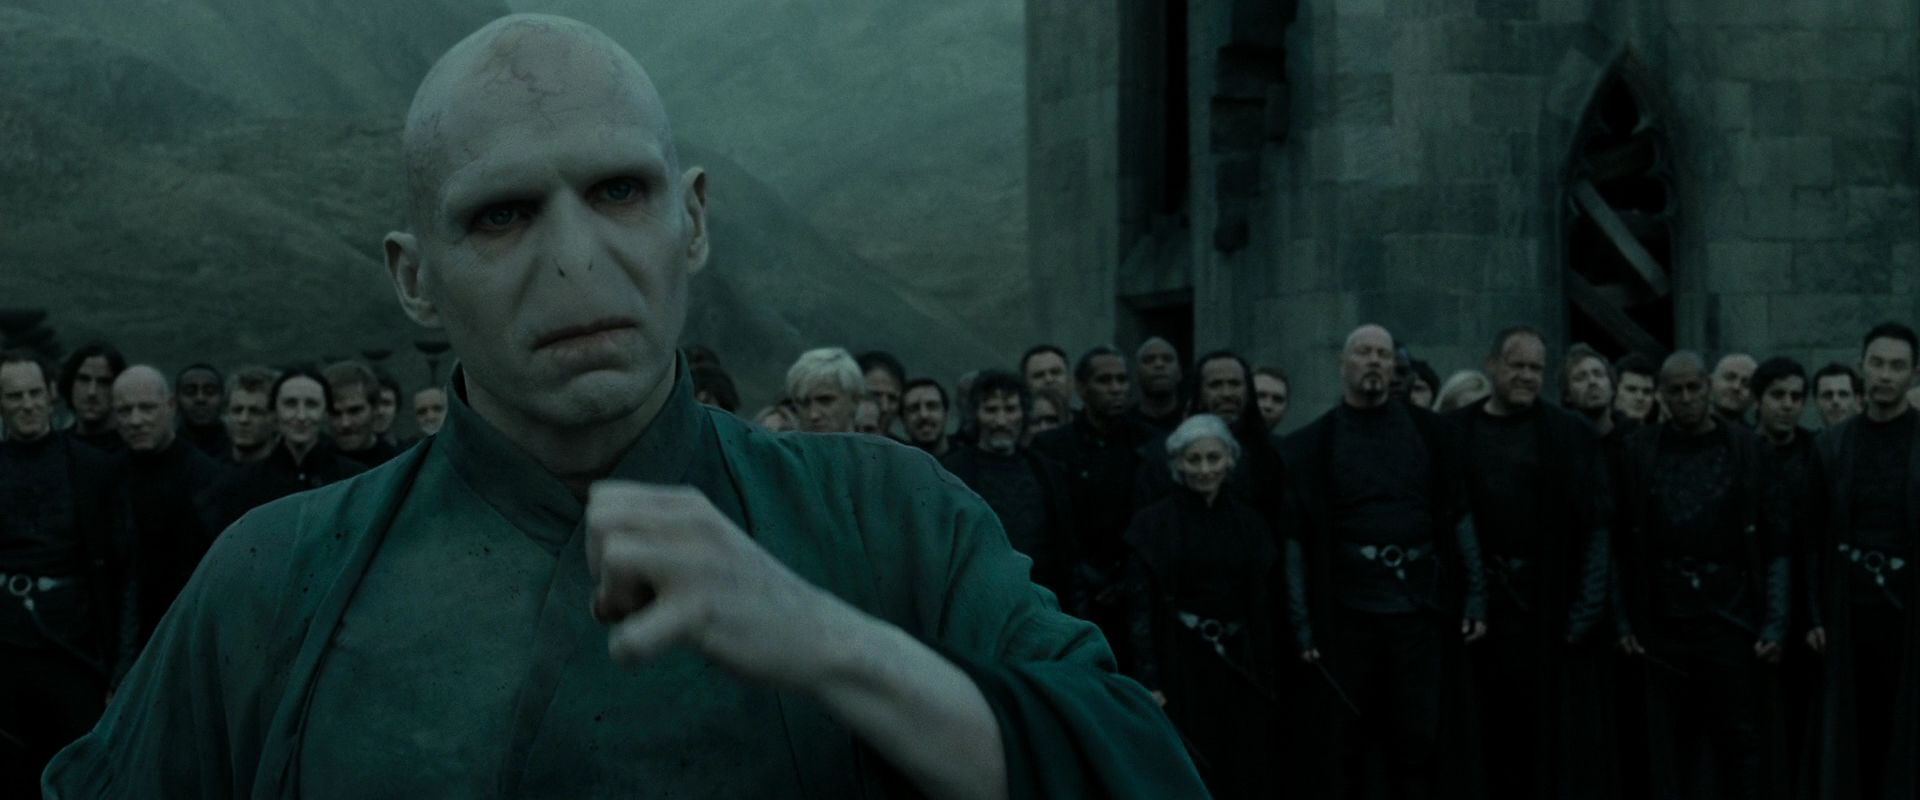 HP-DH-part-2-lord-voldemort-26625088-1920-800.jpg